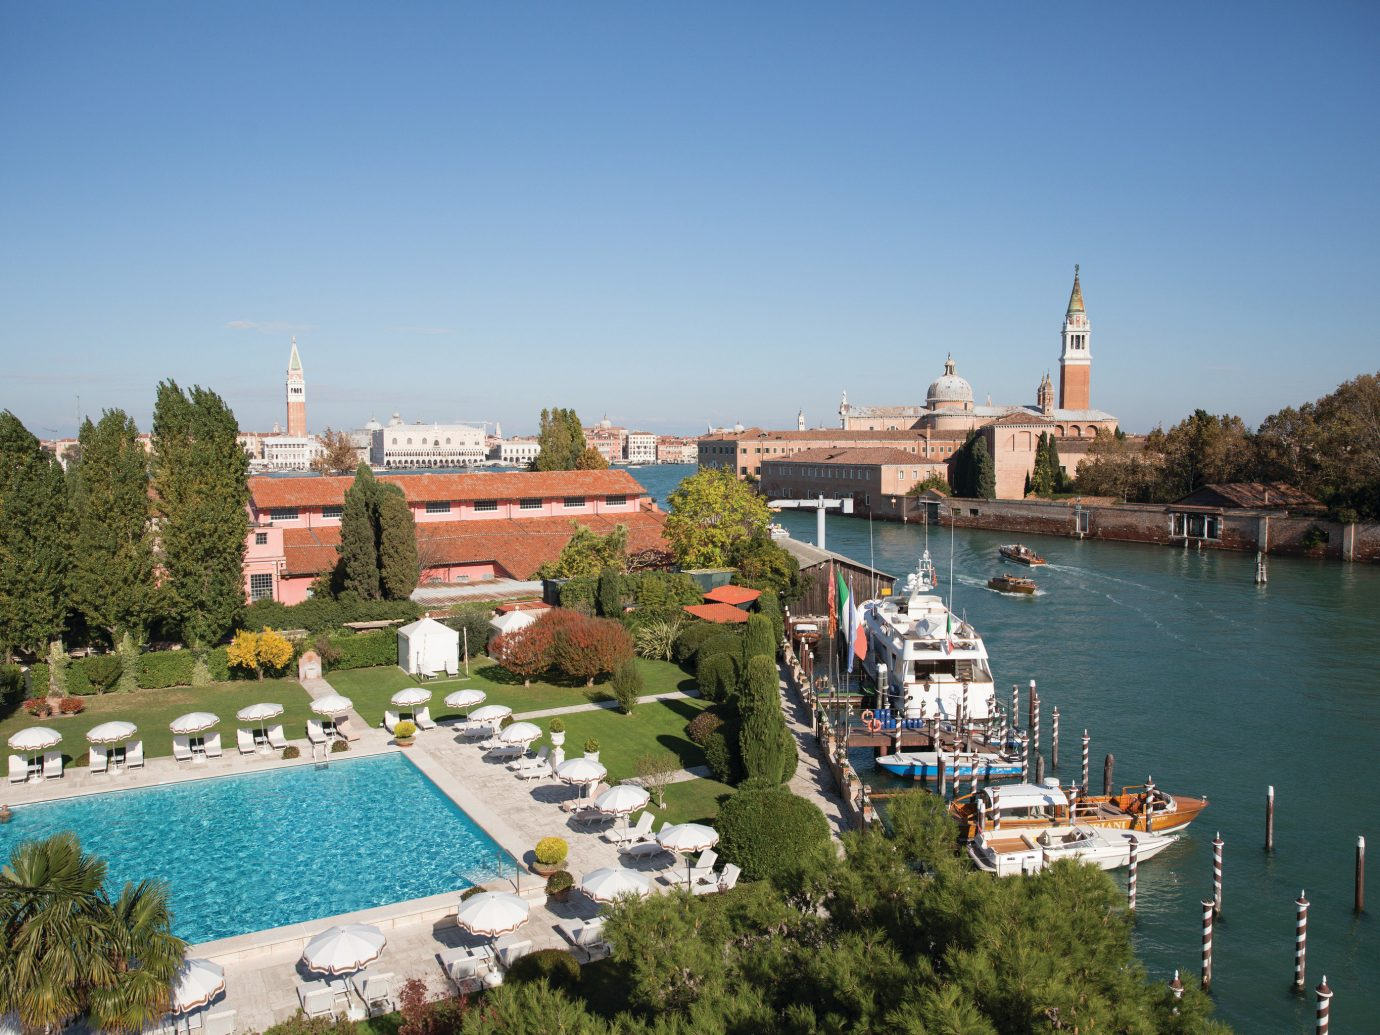 Hotels Italy Luxury Travel Venice City water sky waterway Town tree tourist attraction plant tourism River leisure Lake estate plaza